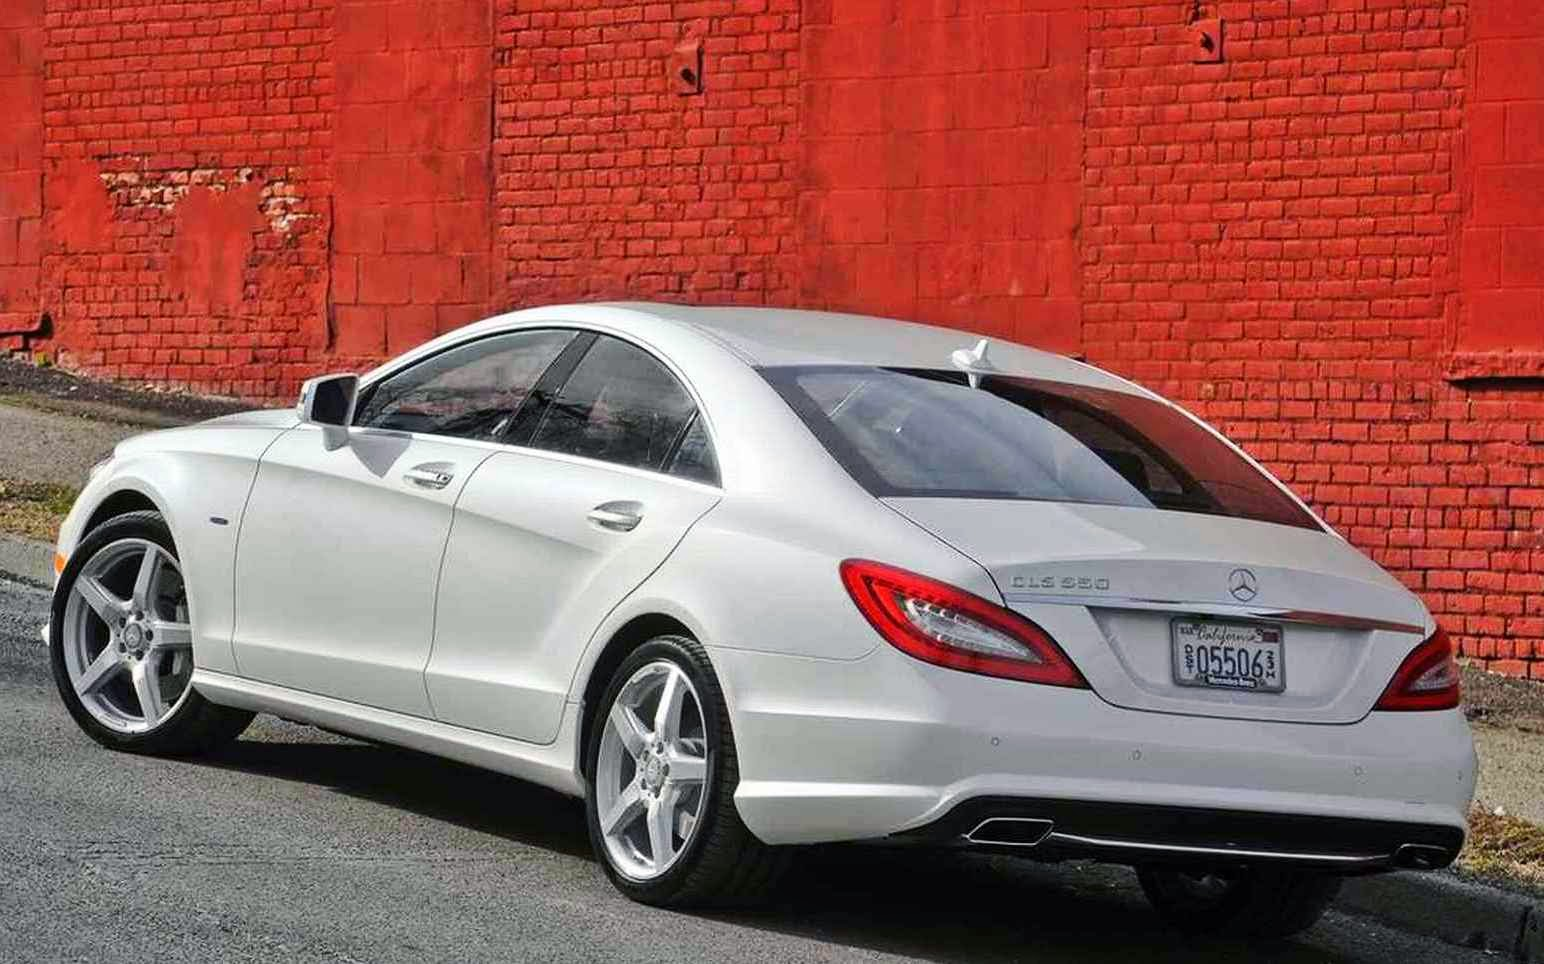 Pictures 2014 mercedes cls550 review car news for Mercedes benz luxury car